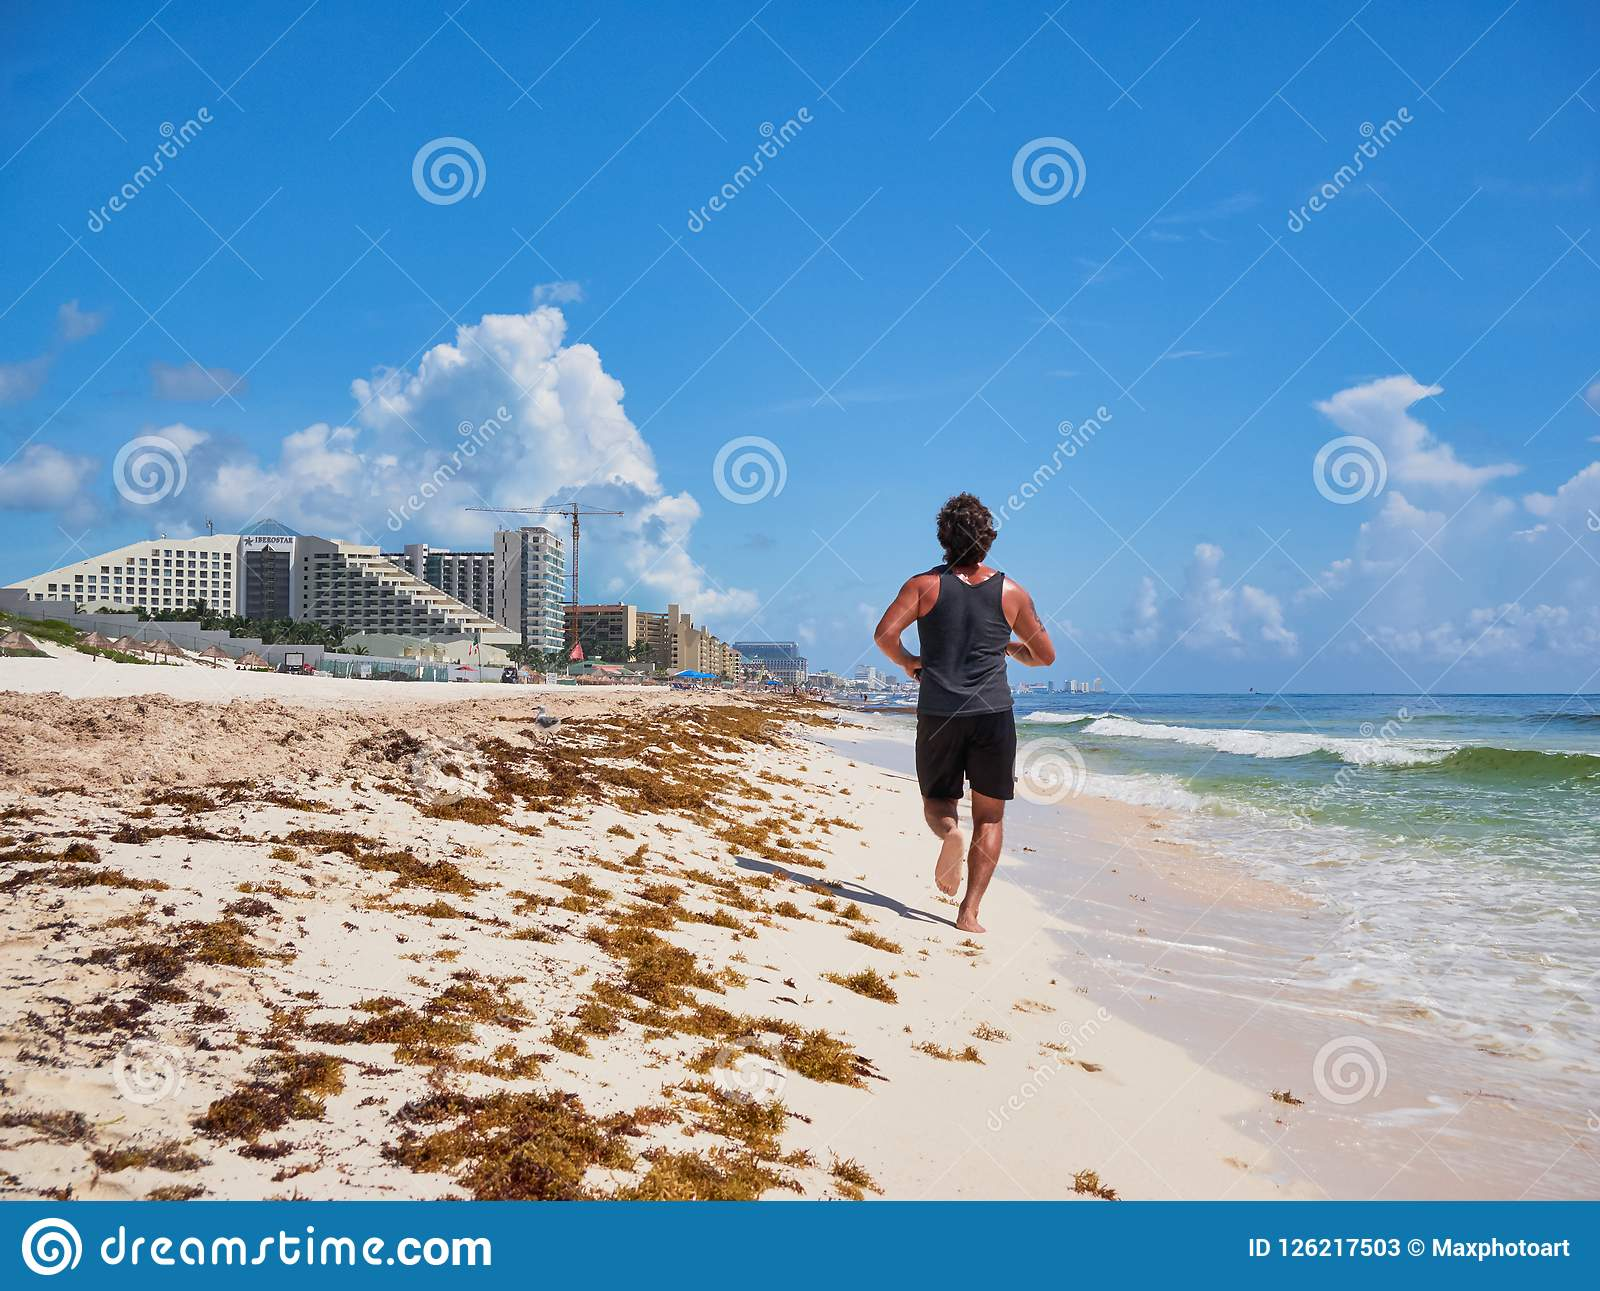 Young man jogging in tropical beach